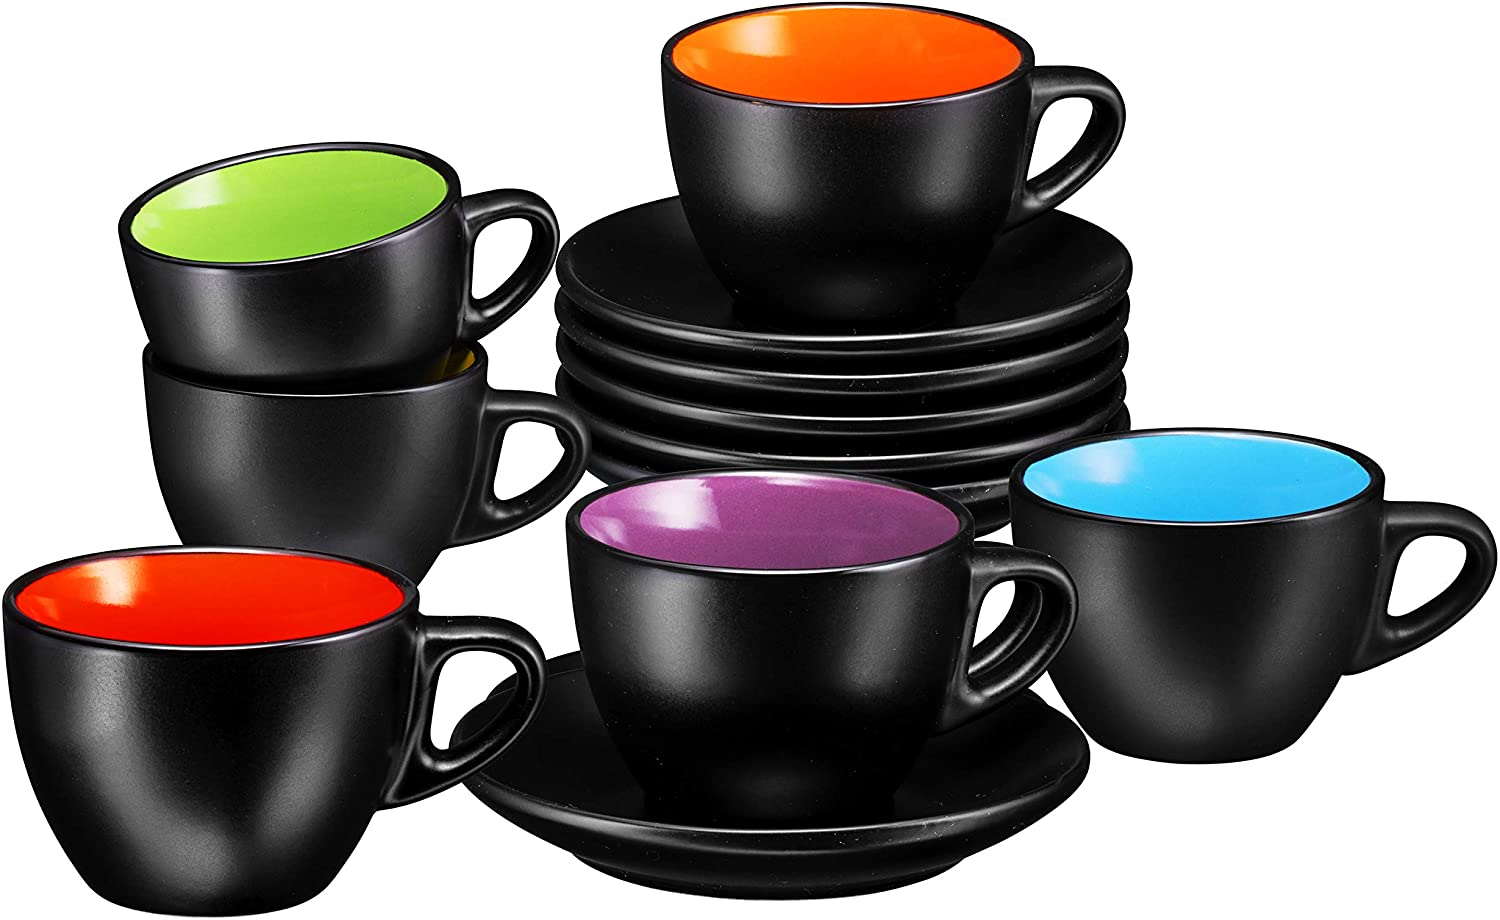 Espresso Cups with Saucers by Bruntmor